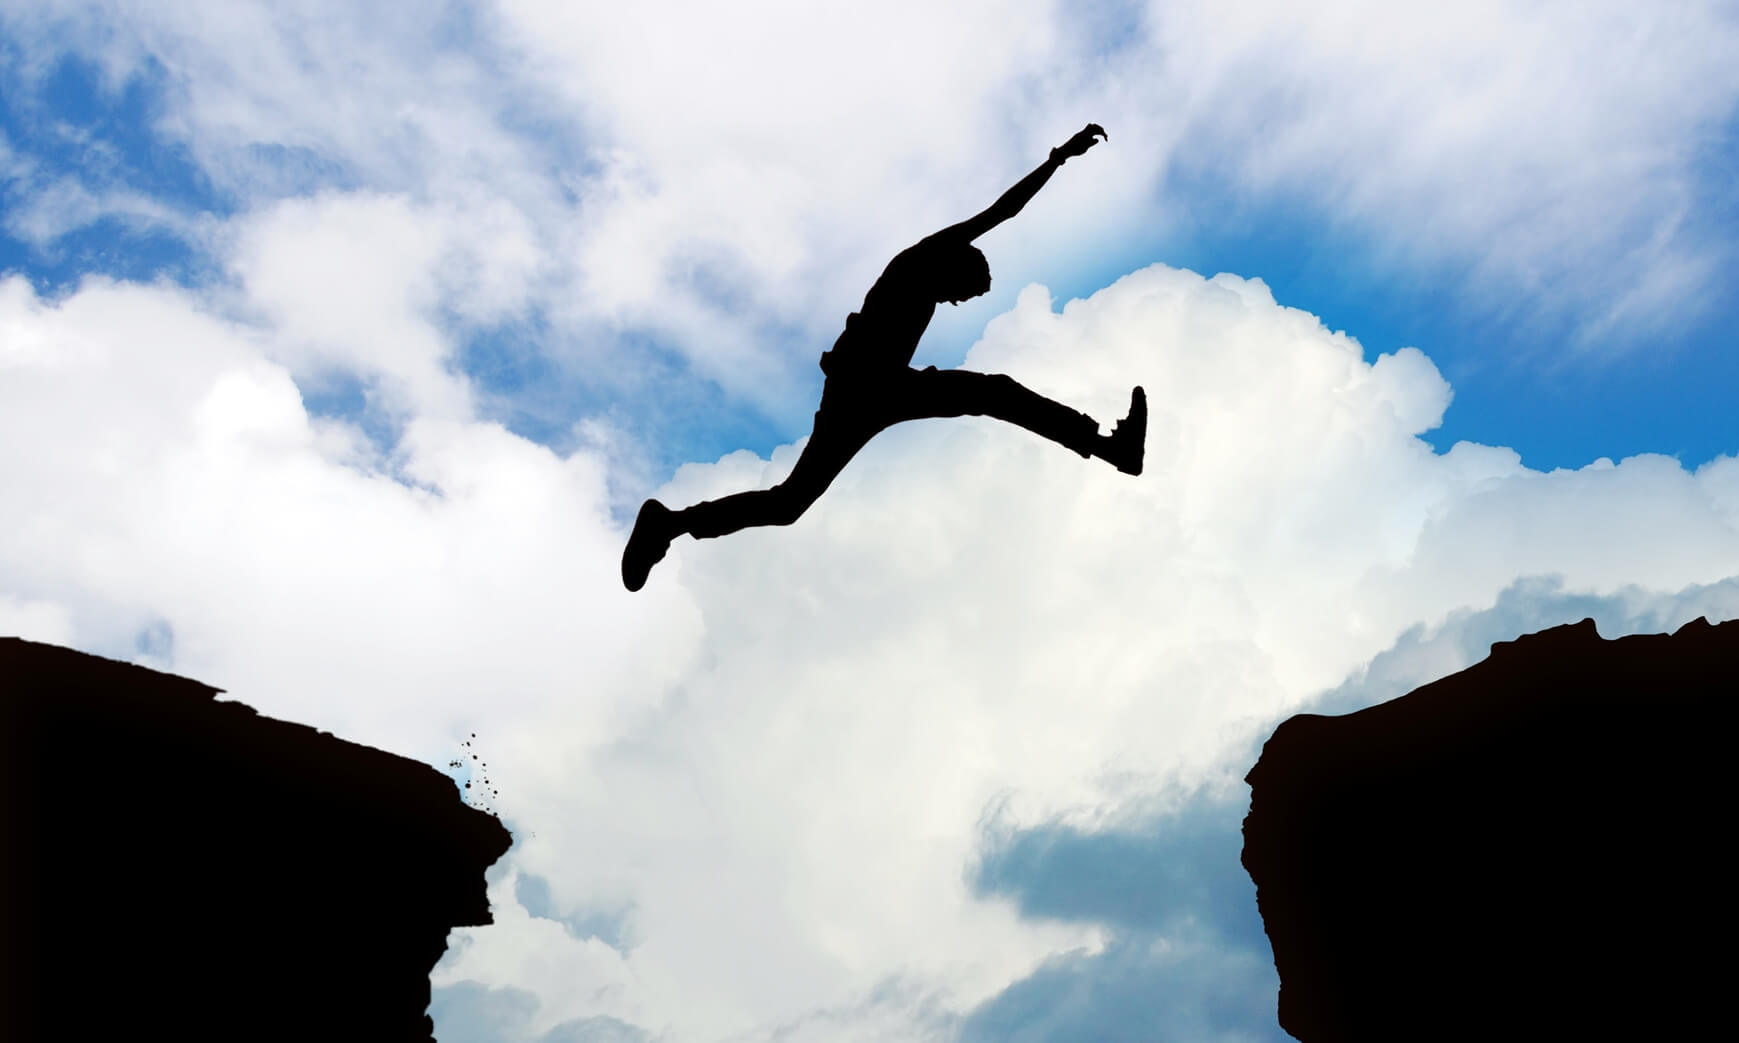 Silhouette of man jumping cliffs with cloudy sky